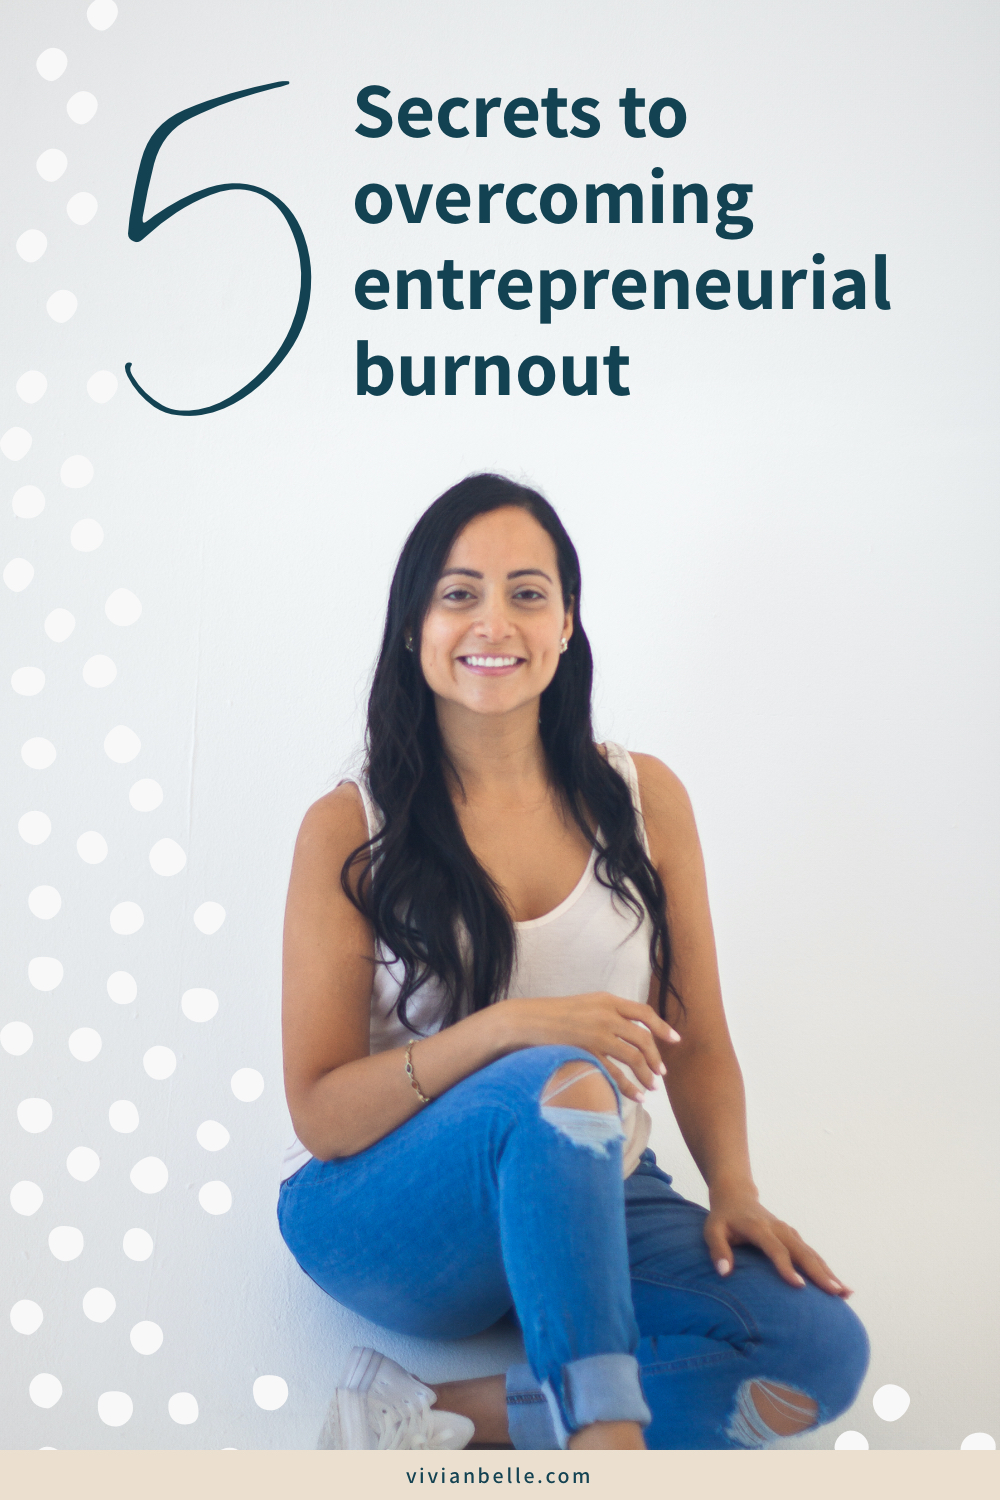 5 secrets to overcoming entrepreneurial burnout